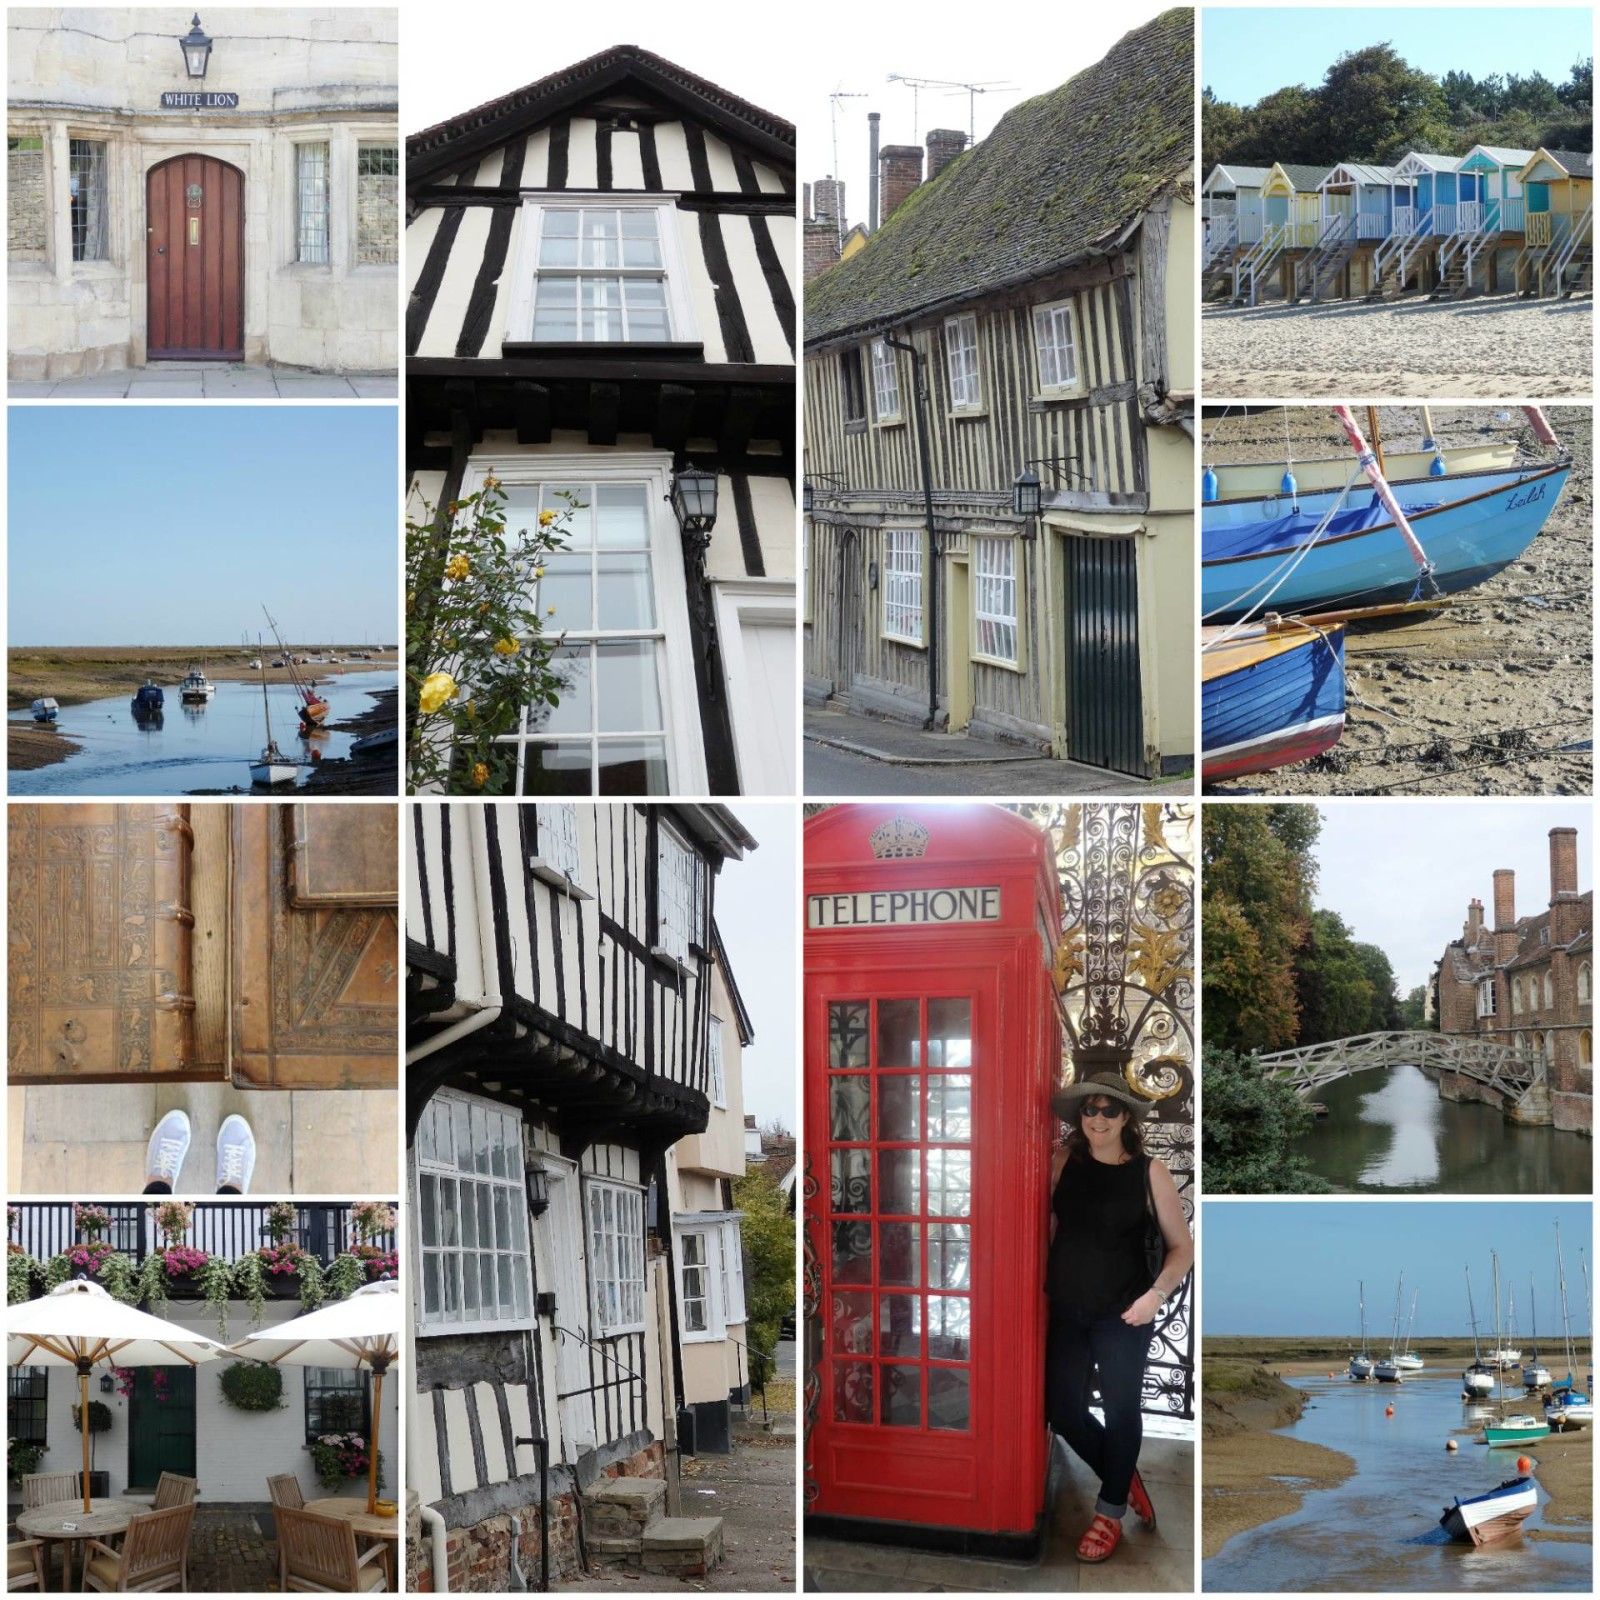 Where-Did-the-Wind-Blow-Me-and-a-few-other-reflections-My-2015-Review-England-Day-Trips